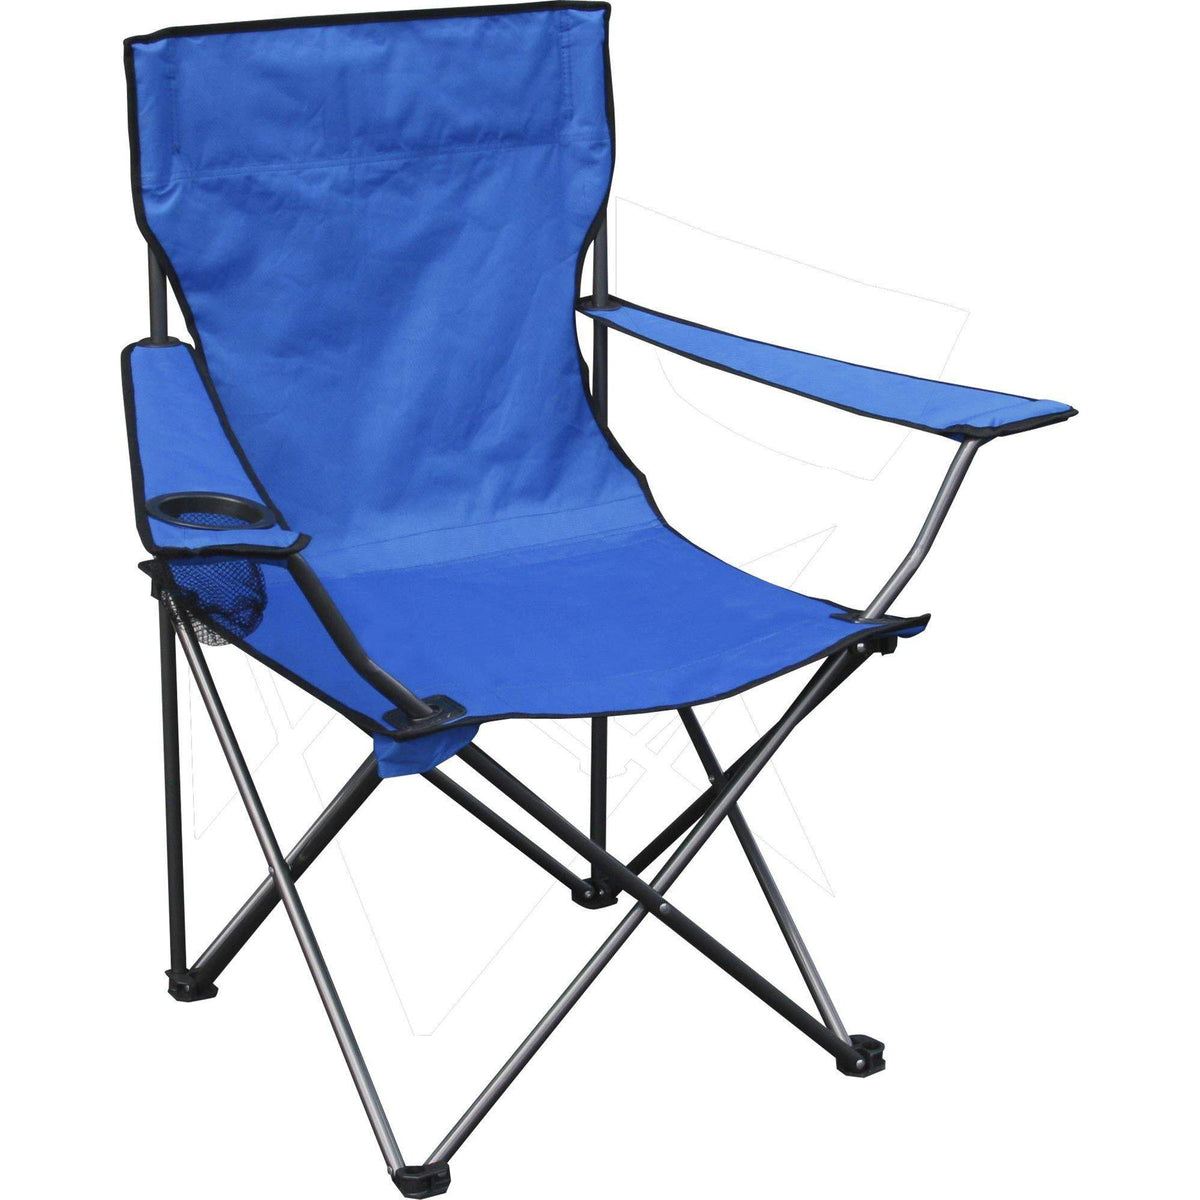 Quik Chair Portable Folding Chair with Arm Rest Cup Holder and Carrying and Storage Bag